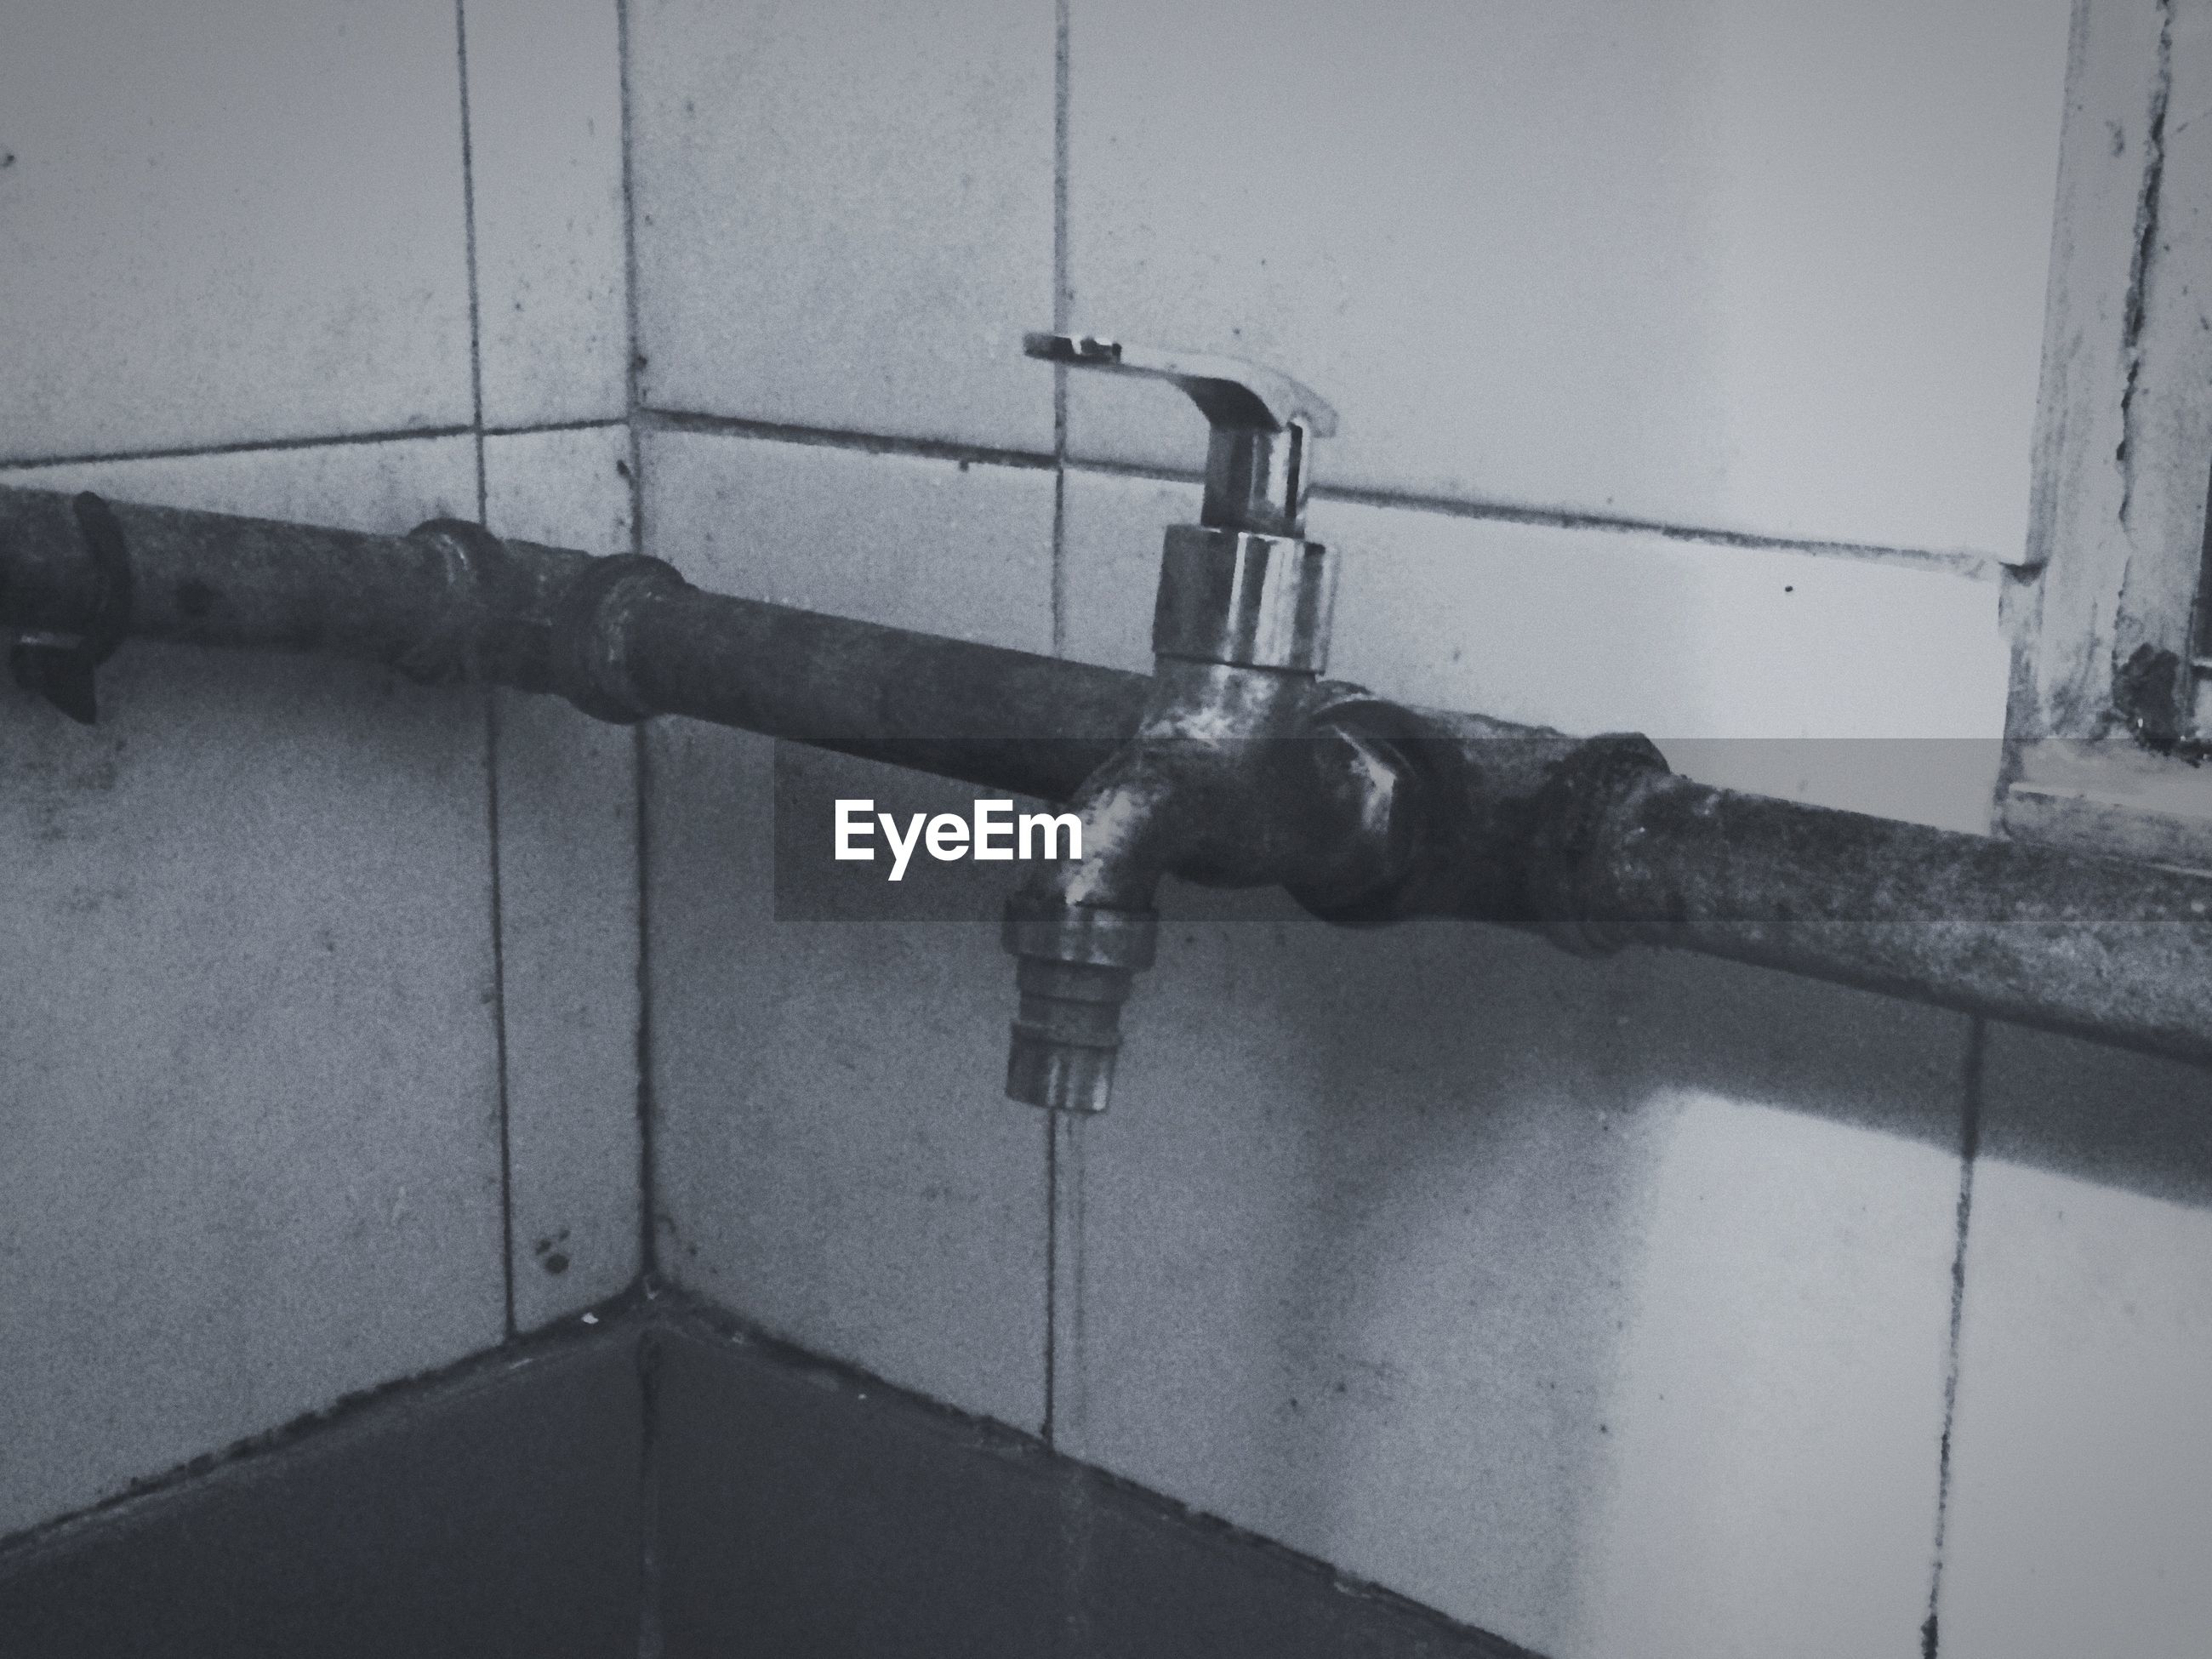 indoors, wall - building feature, metal, built structure, faucet, lighting equipment, close-up, wall, architecture, bathroom, old, electricity, hanging, no people, metallic, pipe - tube, protection, technology, door, handle